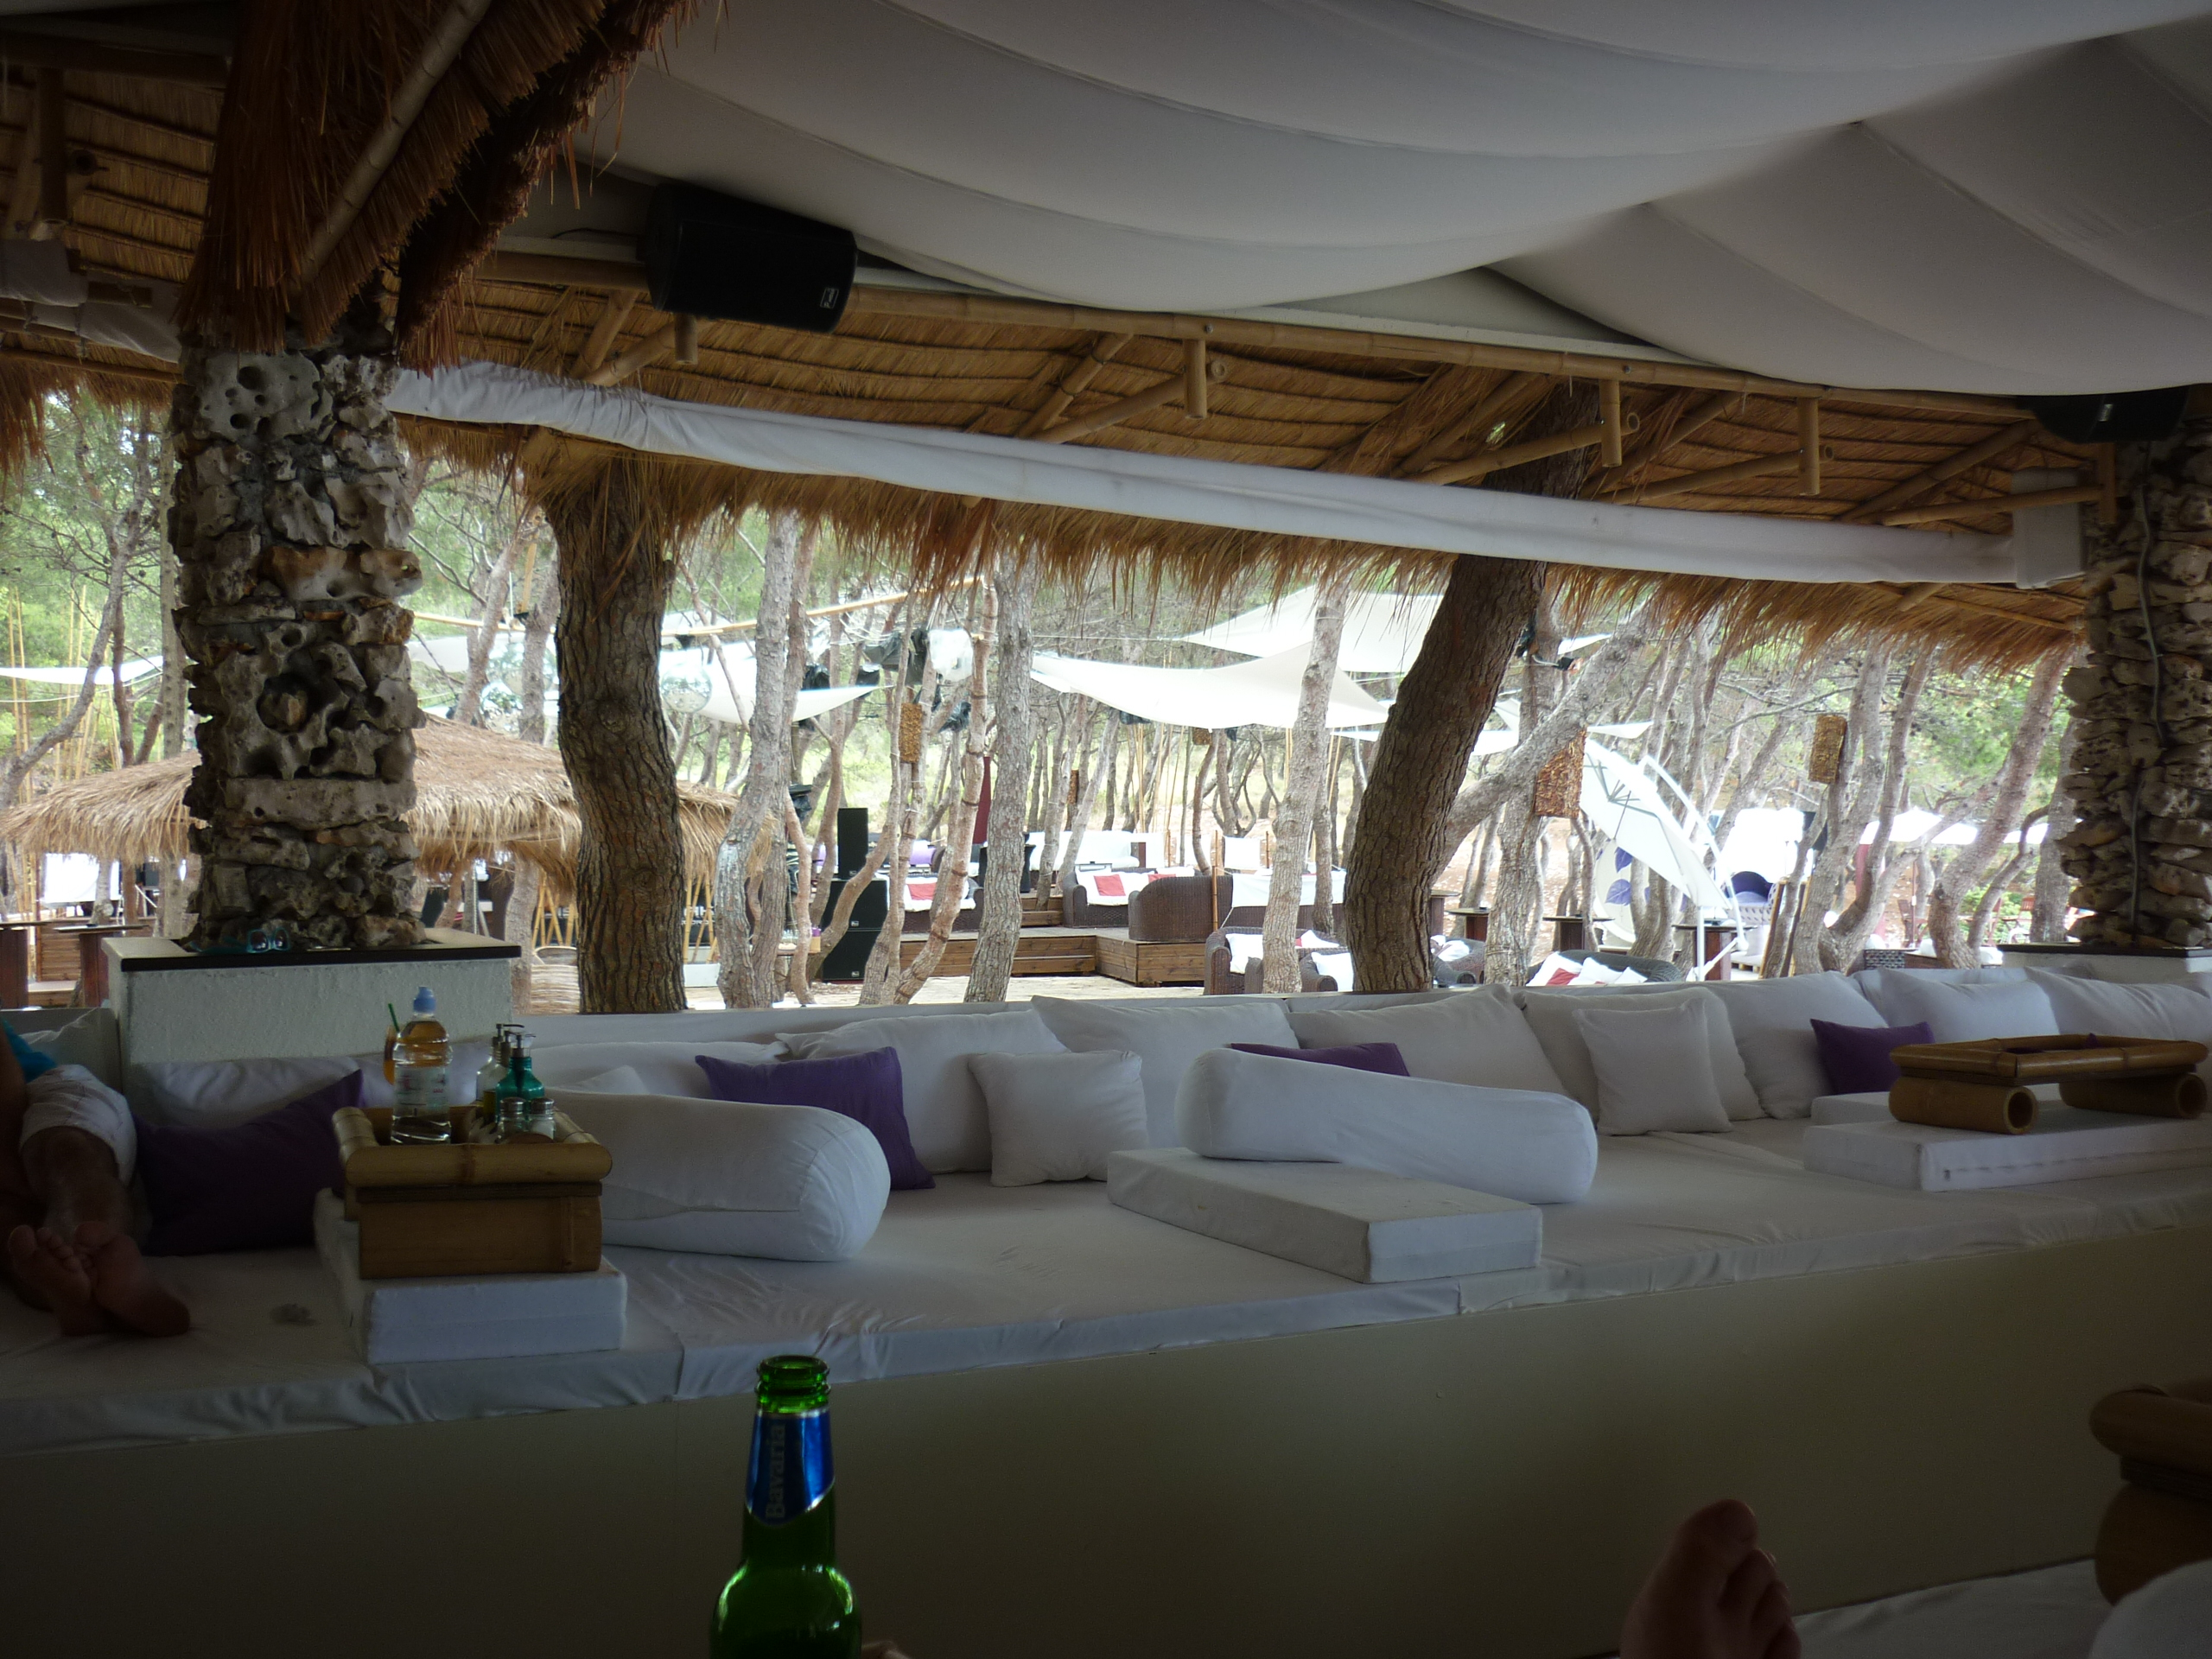 Carpediem Gallery Bangkok, carpe diem beach hvar | beach club,bar and restaurants | Pinterest ...